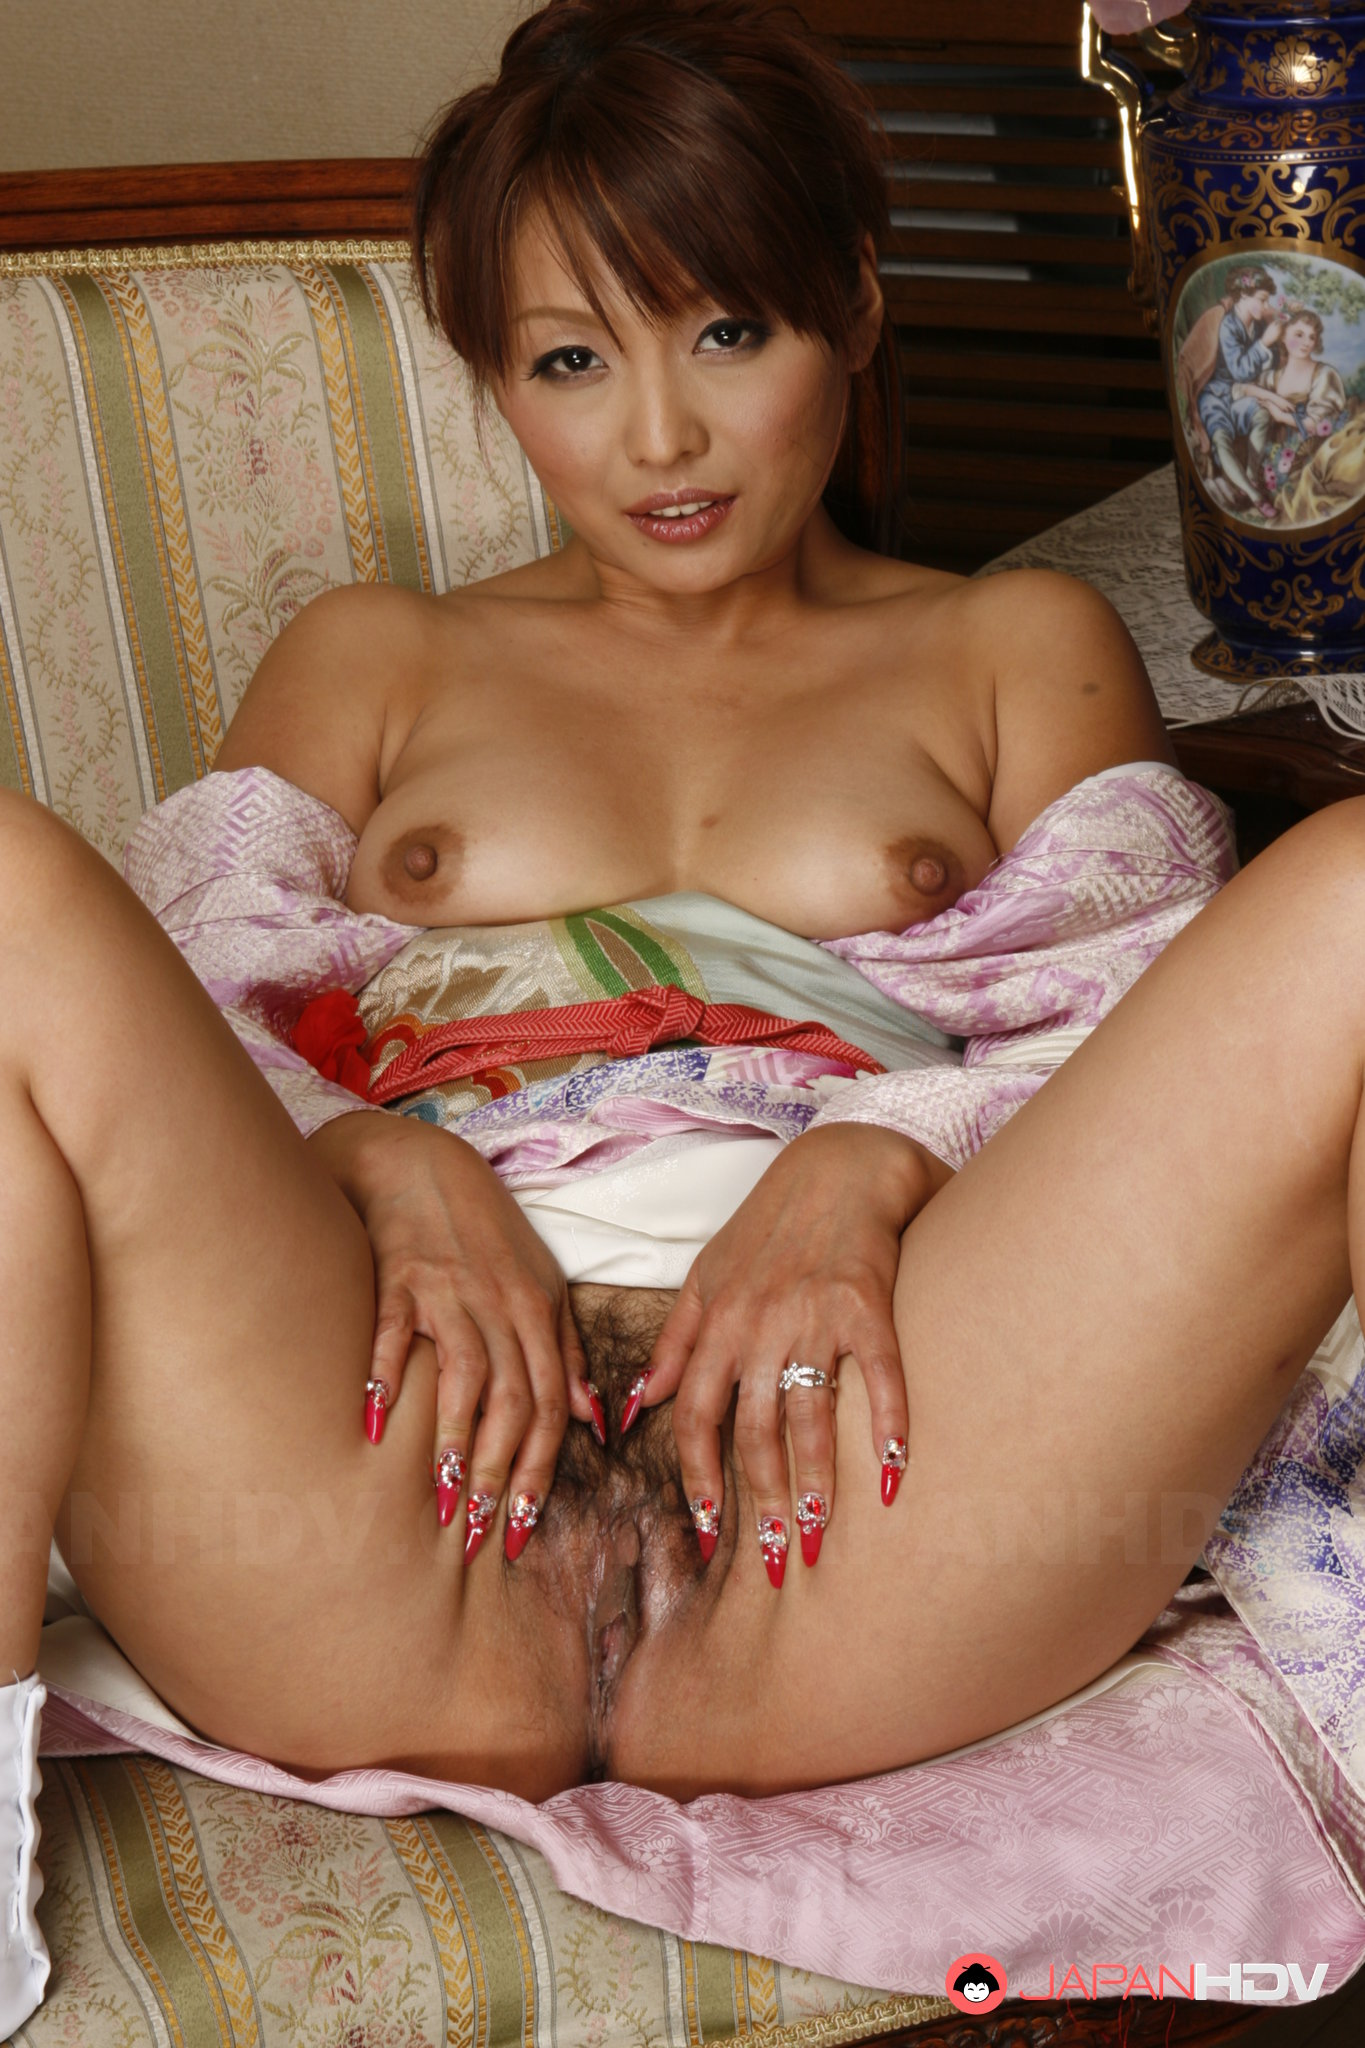 Sexy asian girl spread legs pussy have